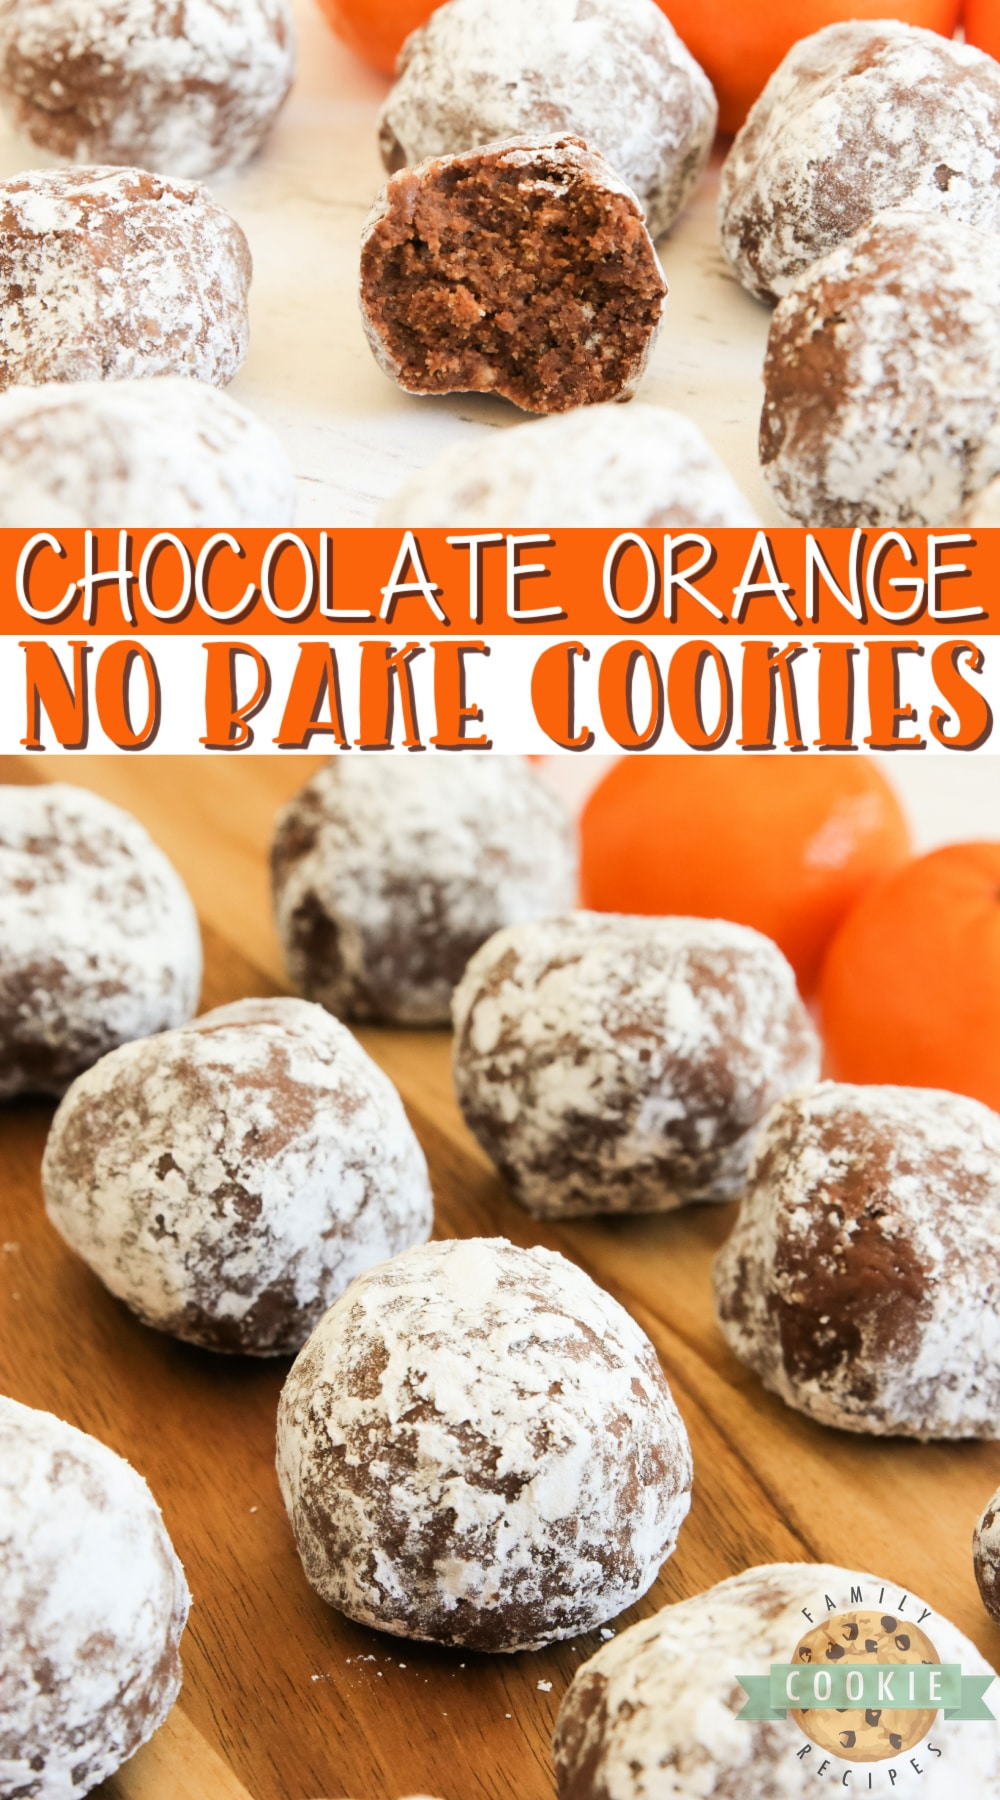 Chocolate Orange No Bake Cookies are made with only 5 ingredients in less than 5 minutes. Made with melted chocolate, crushed vanilla wafers and orange juice for a delicious no bake cookie recipe! via @buttergirls